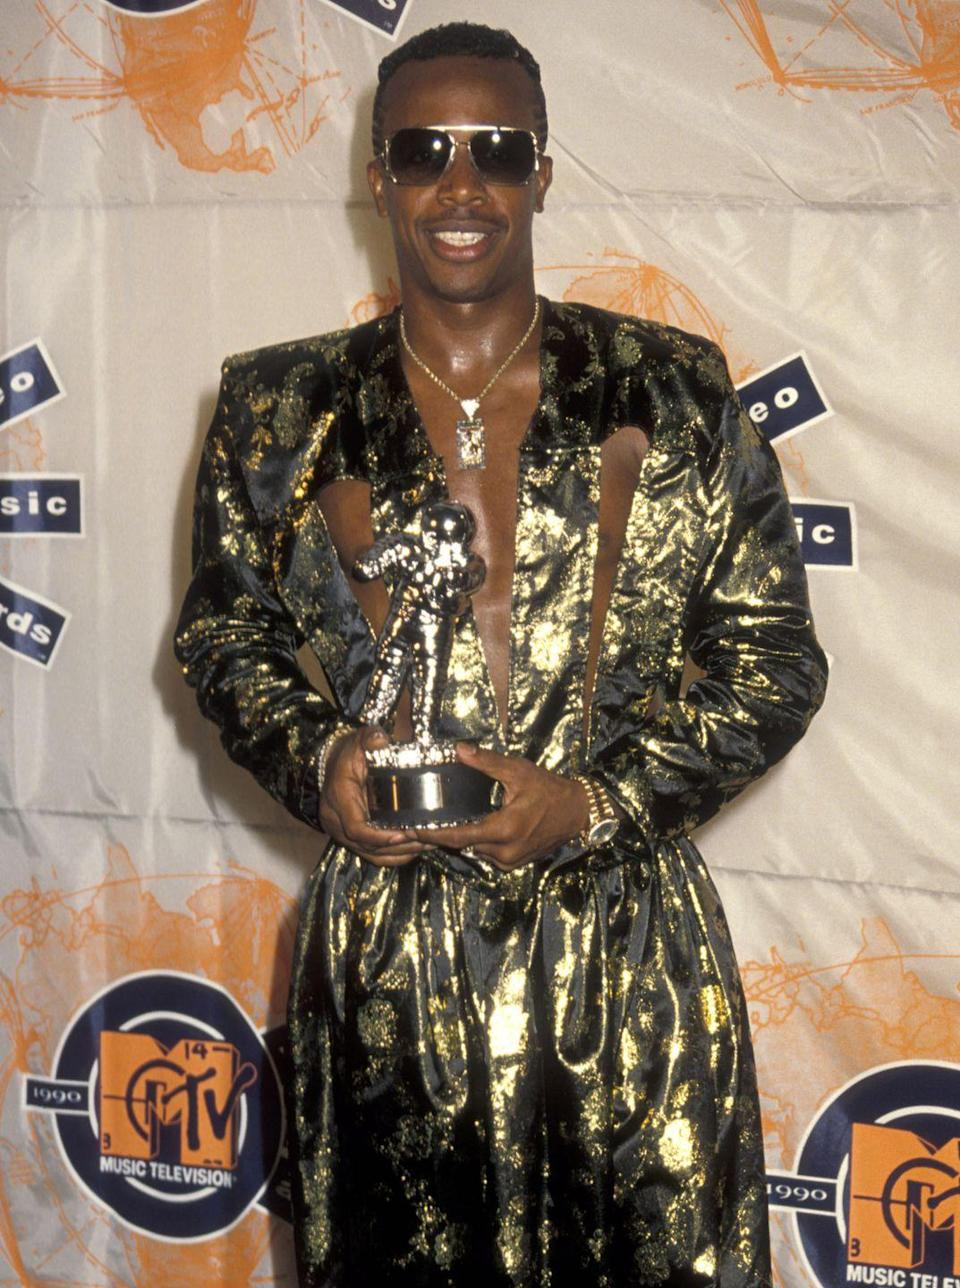 <p>MC Hammer's metallic pants were already famous by 1990, but his cutout blazer also caught attention at that year's VMAs.</p>